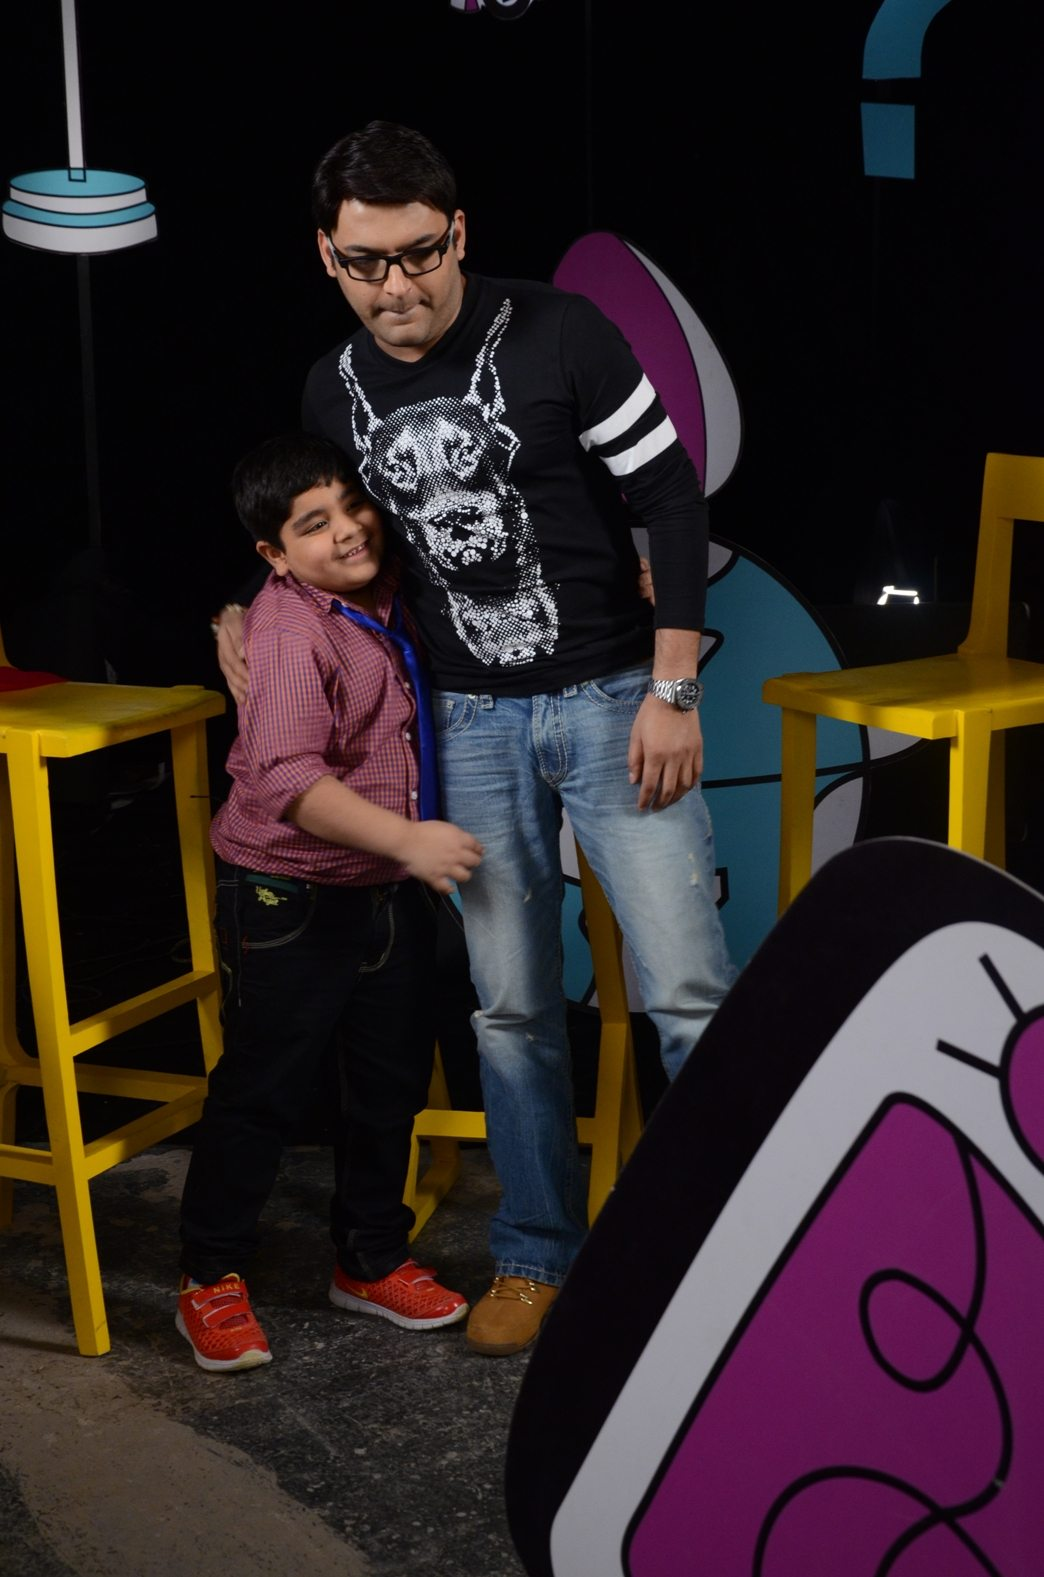 Captain Tiao strikes a pose with Comedy king Kapil Sharma